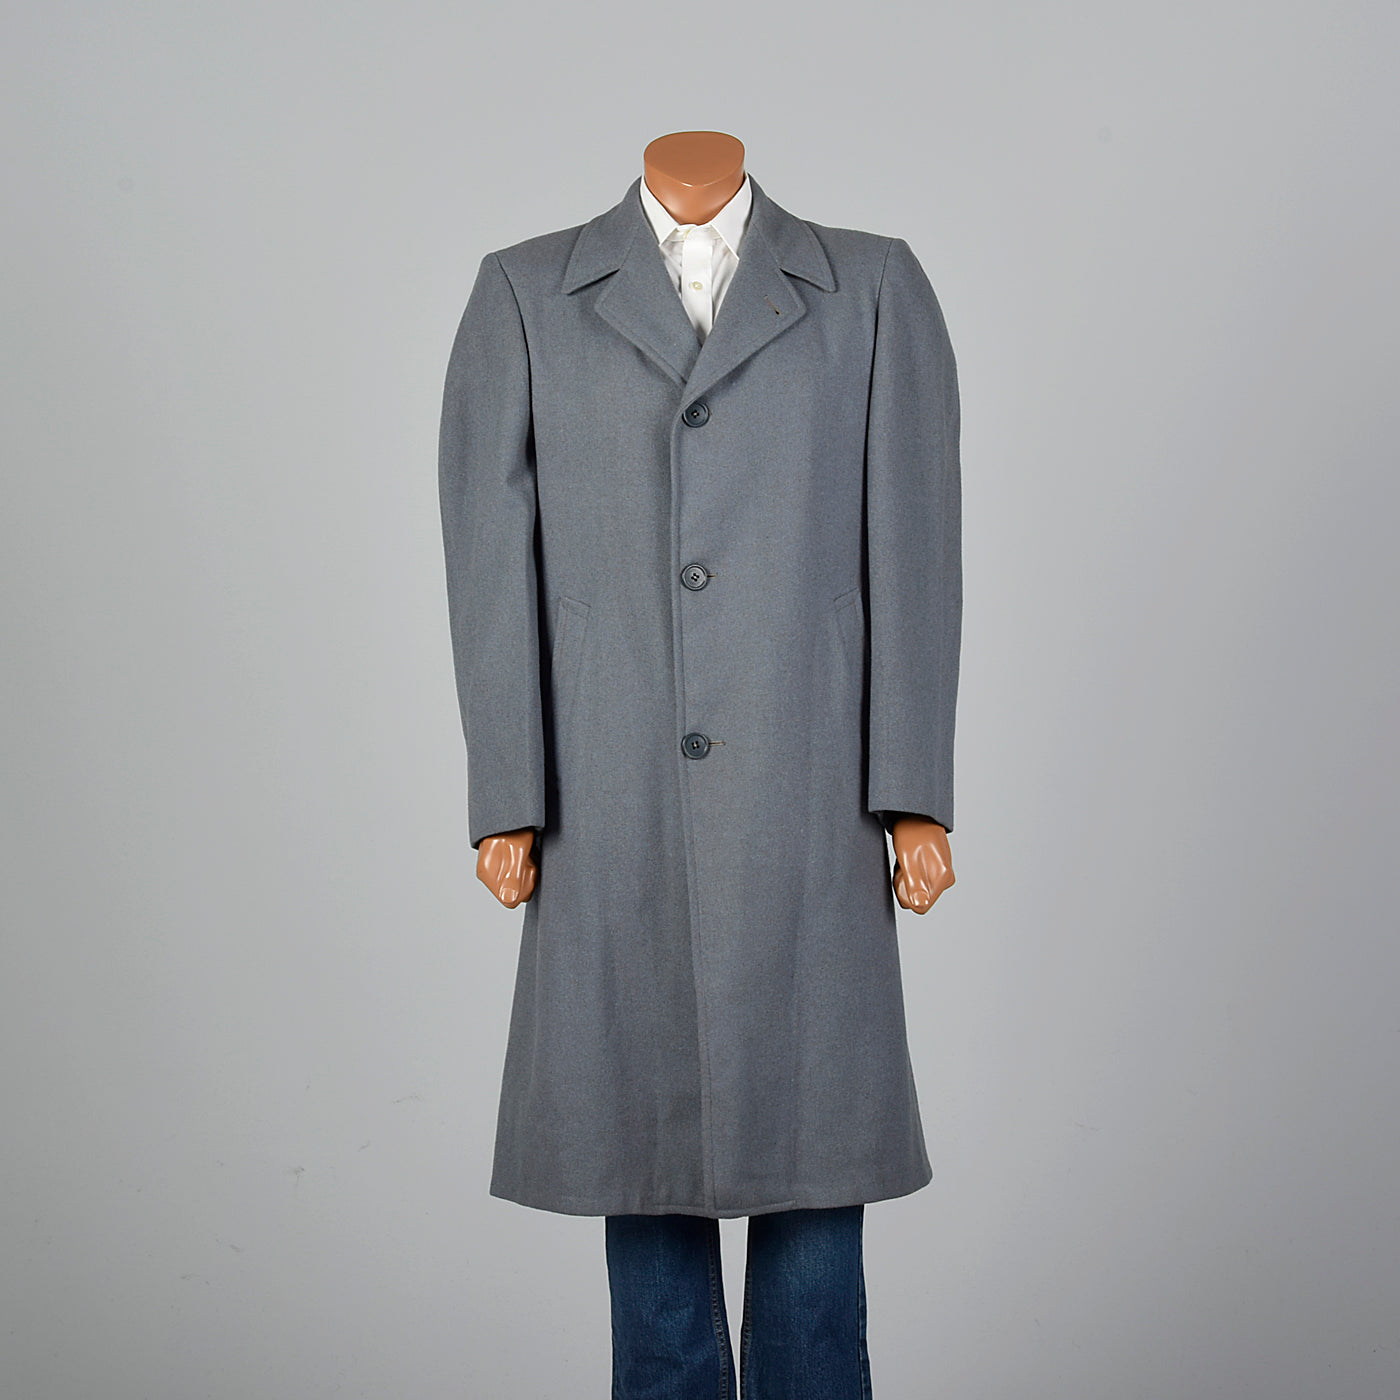 1950s Mens Gray and Blue Overcoat